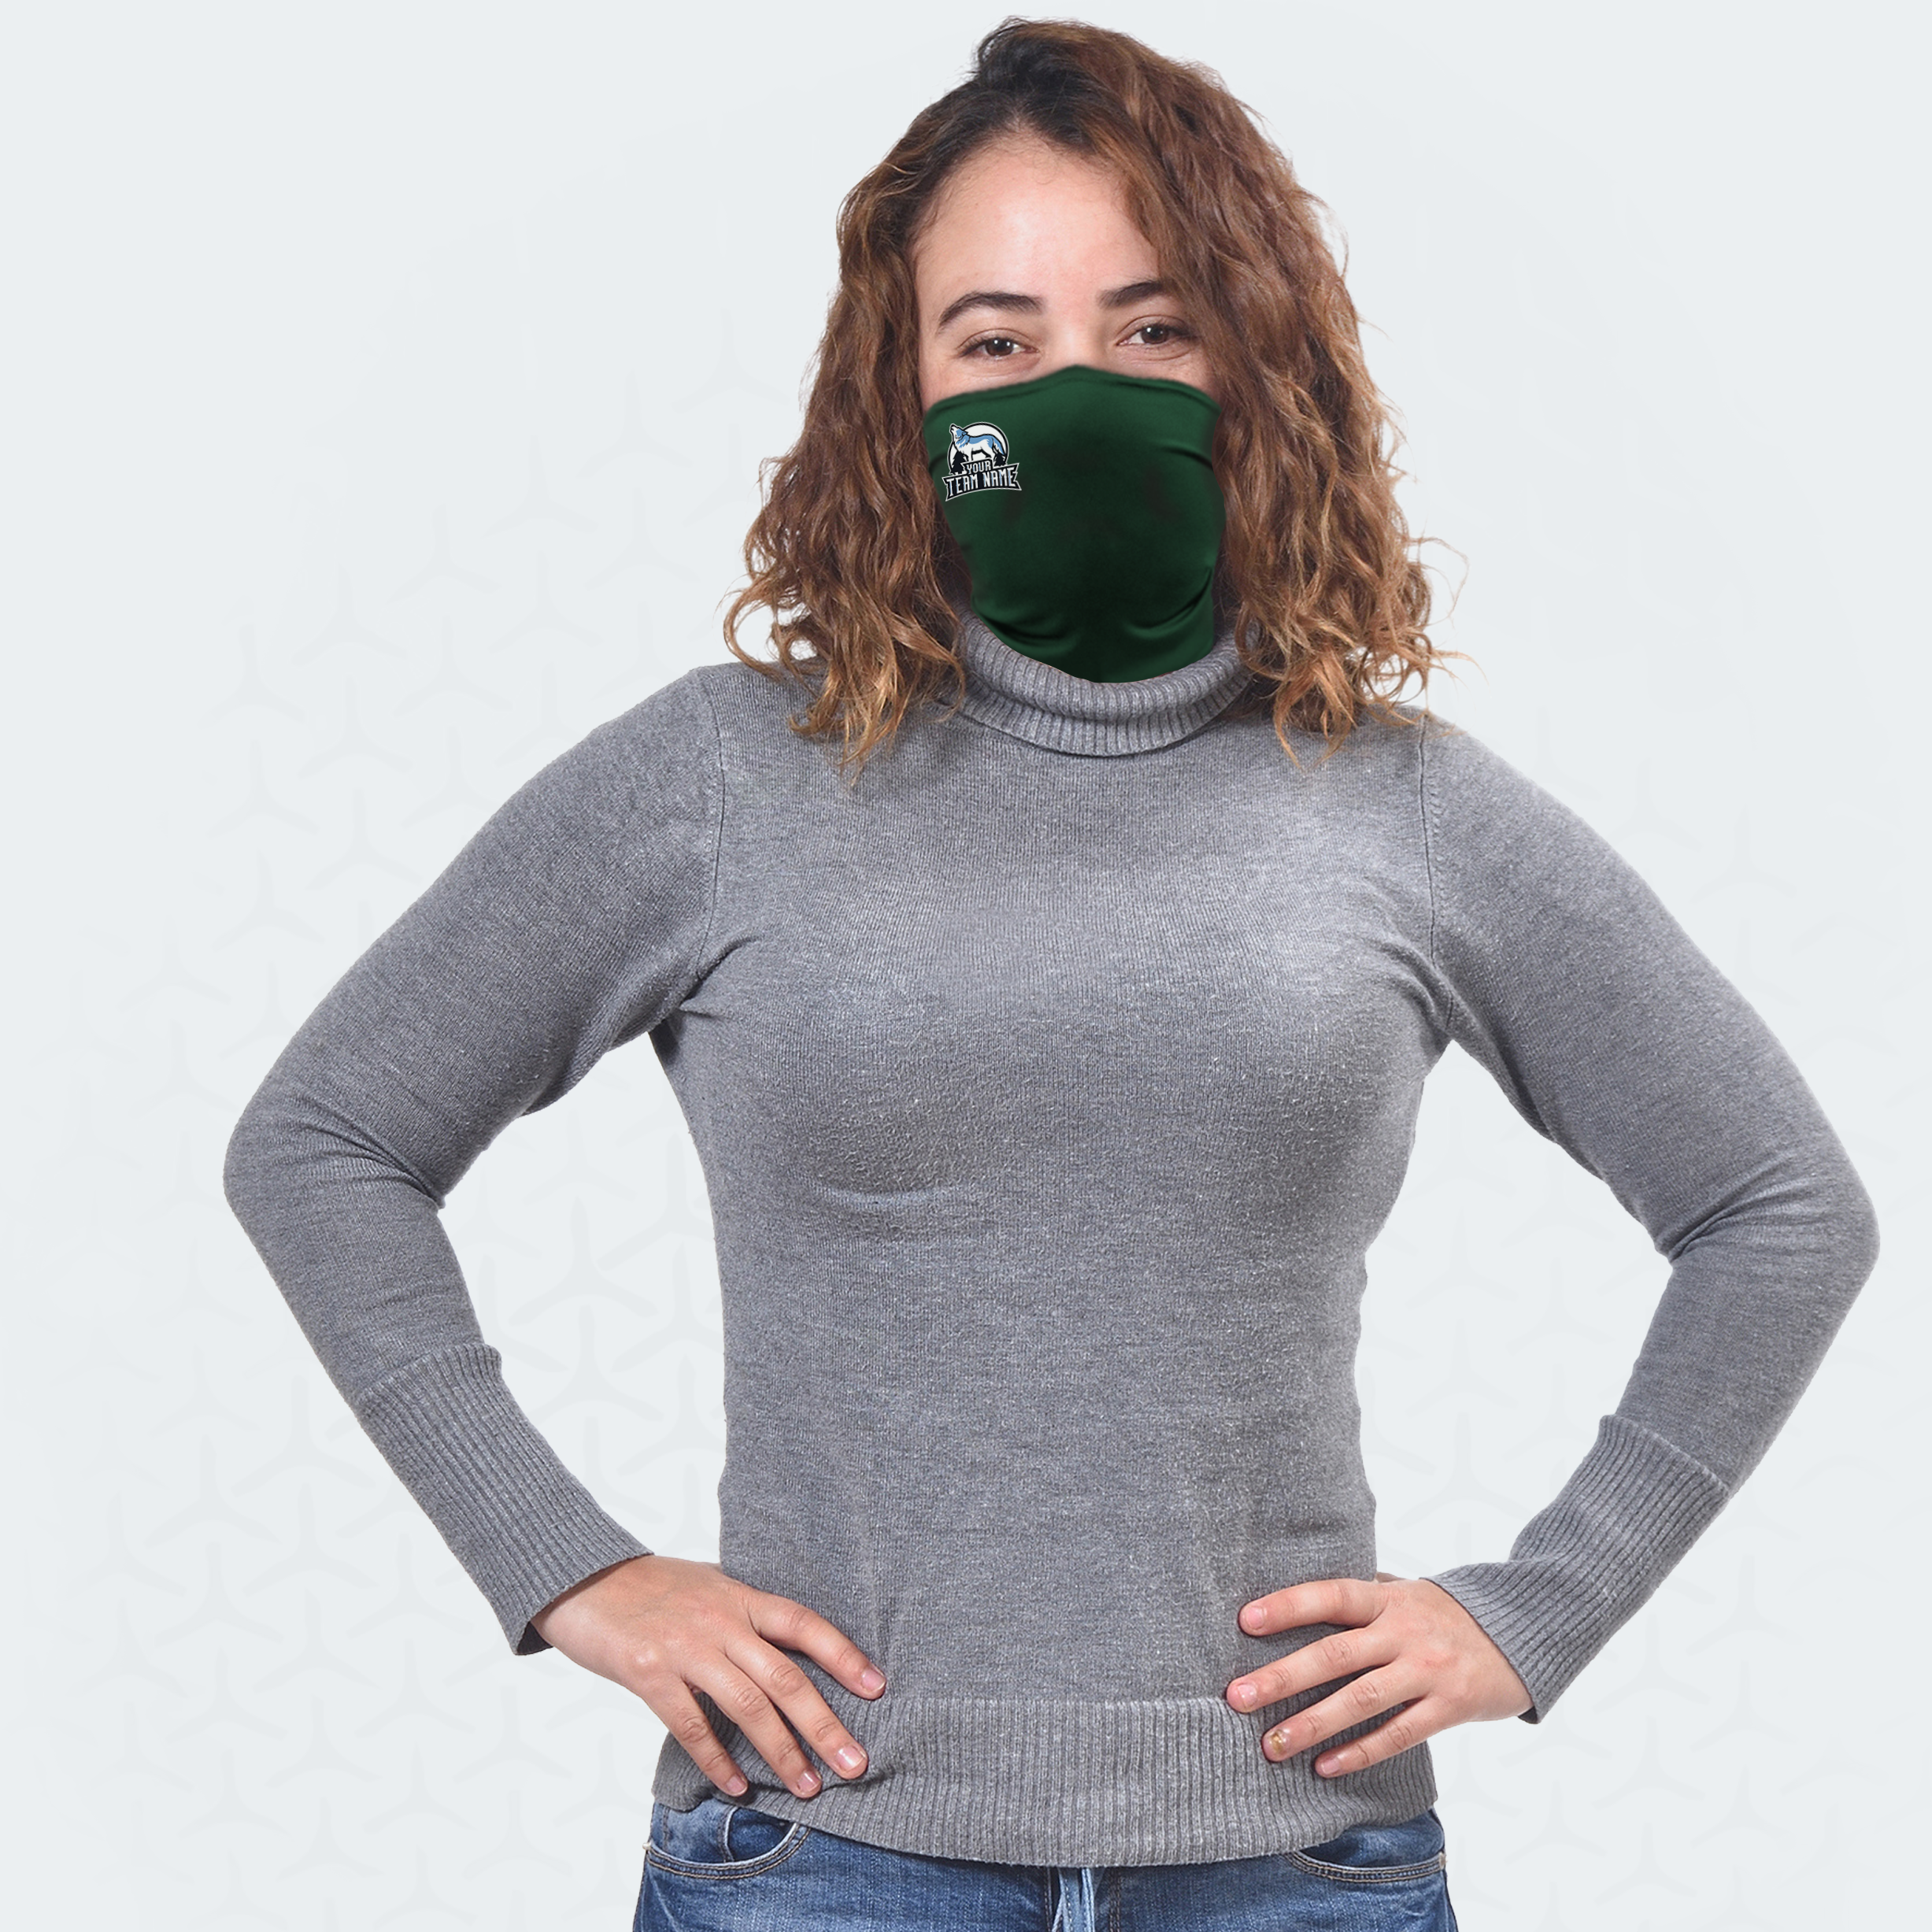 Protect yourself with reusable masks